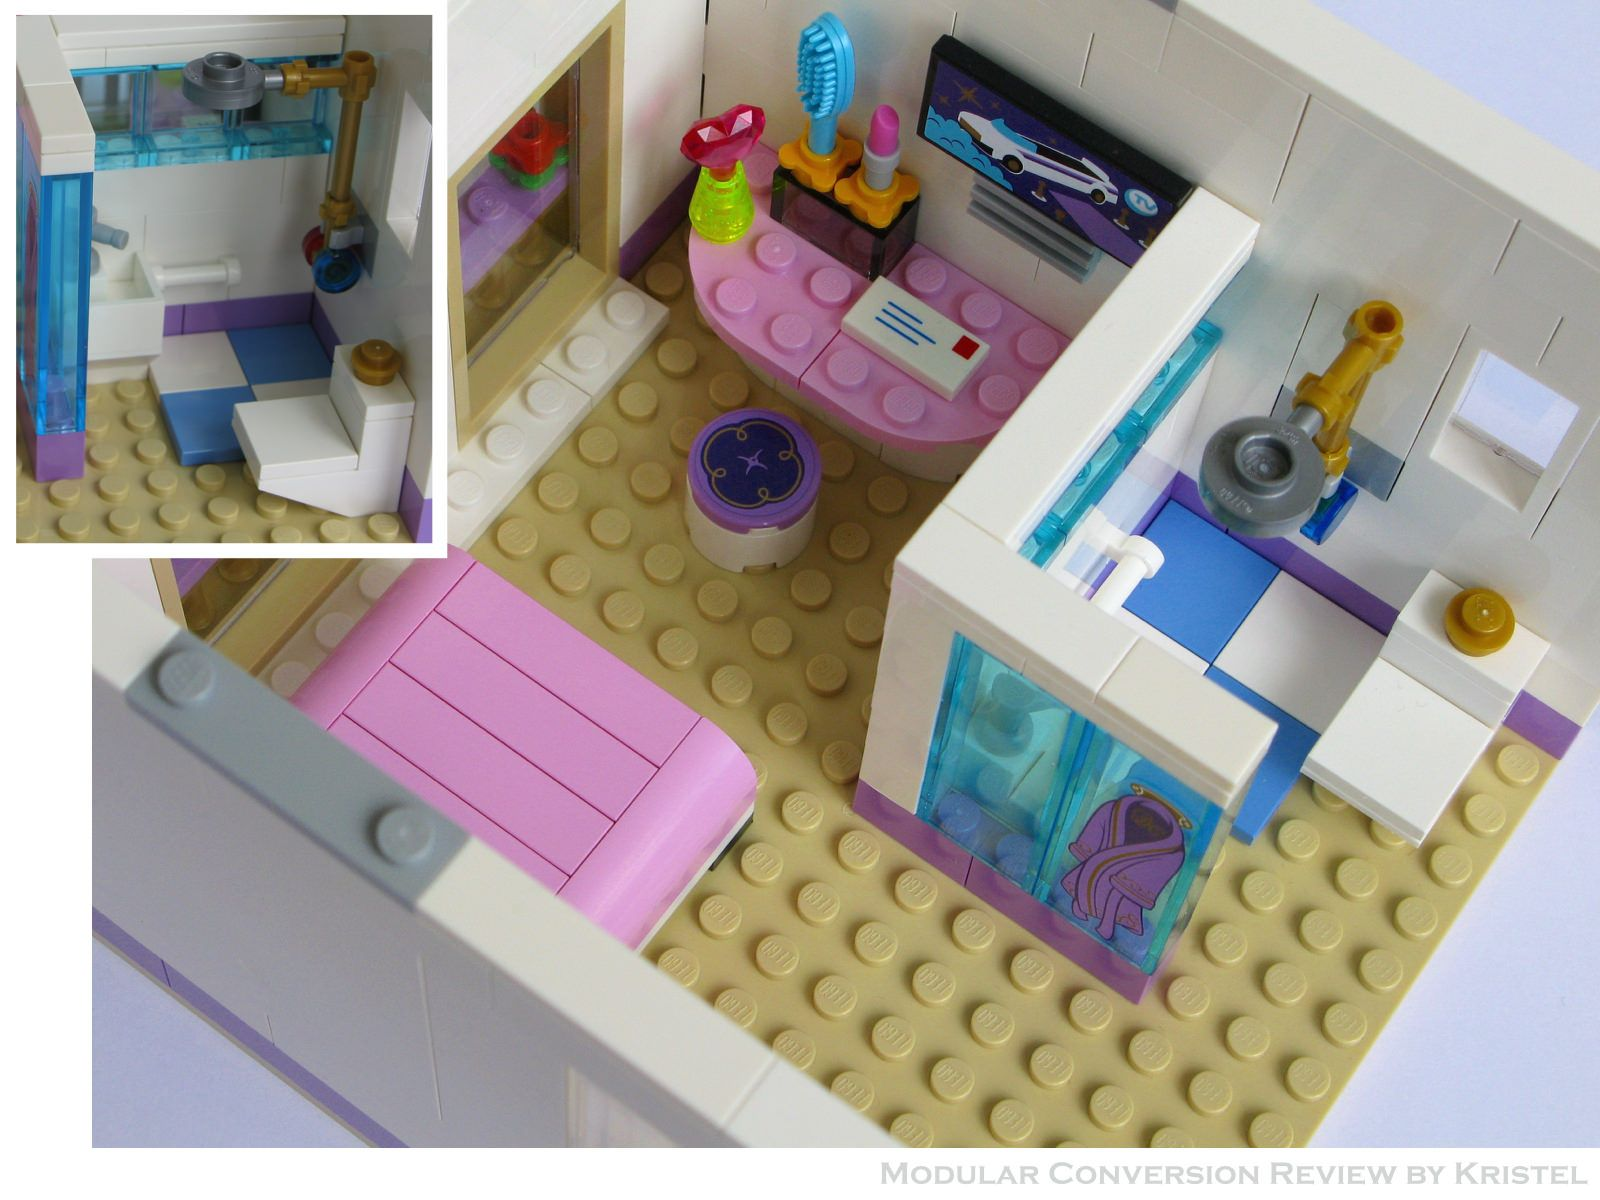 Https Flic Kr P Appvbn 41101 Heartlake Grand Hotel Modular Conversion Review Read The Full Review Here Lego Design Lego Friends Sets Lego For Kids